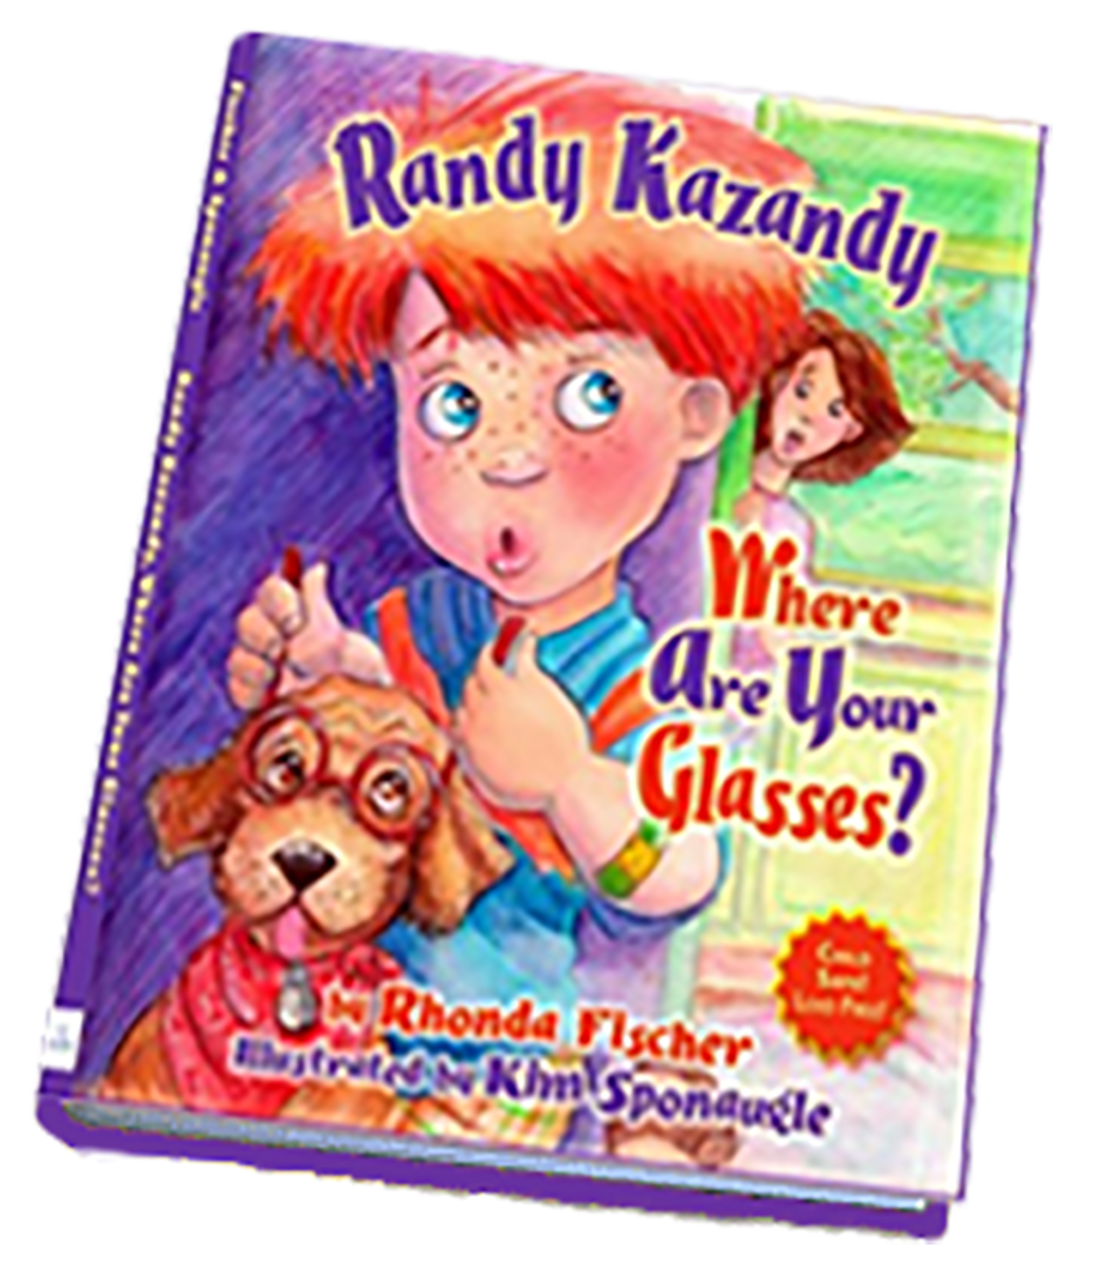 Randy Kazandy! Where Are Your Glasses?